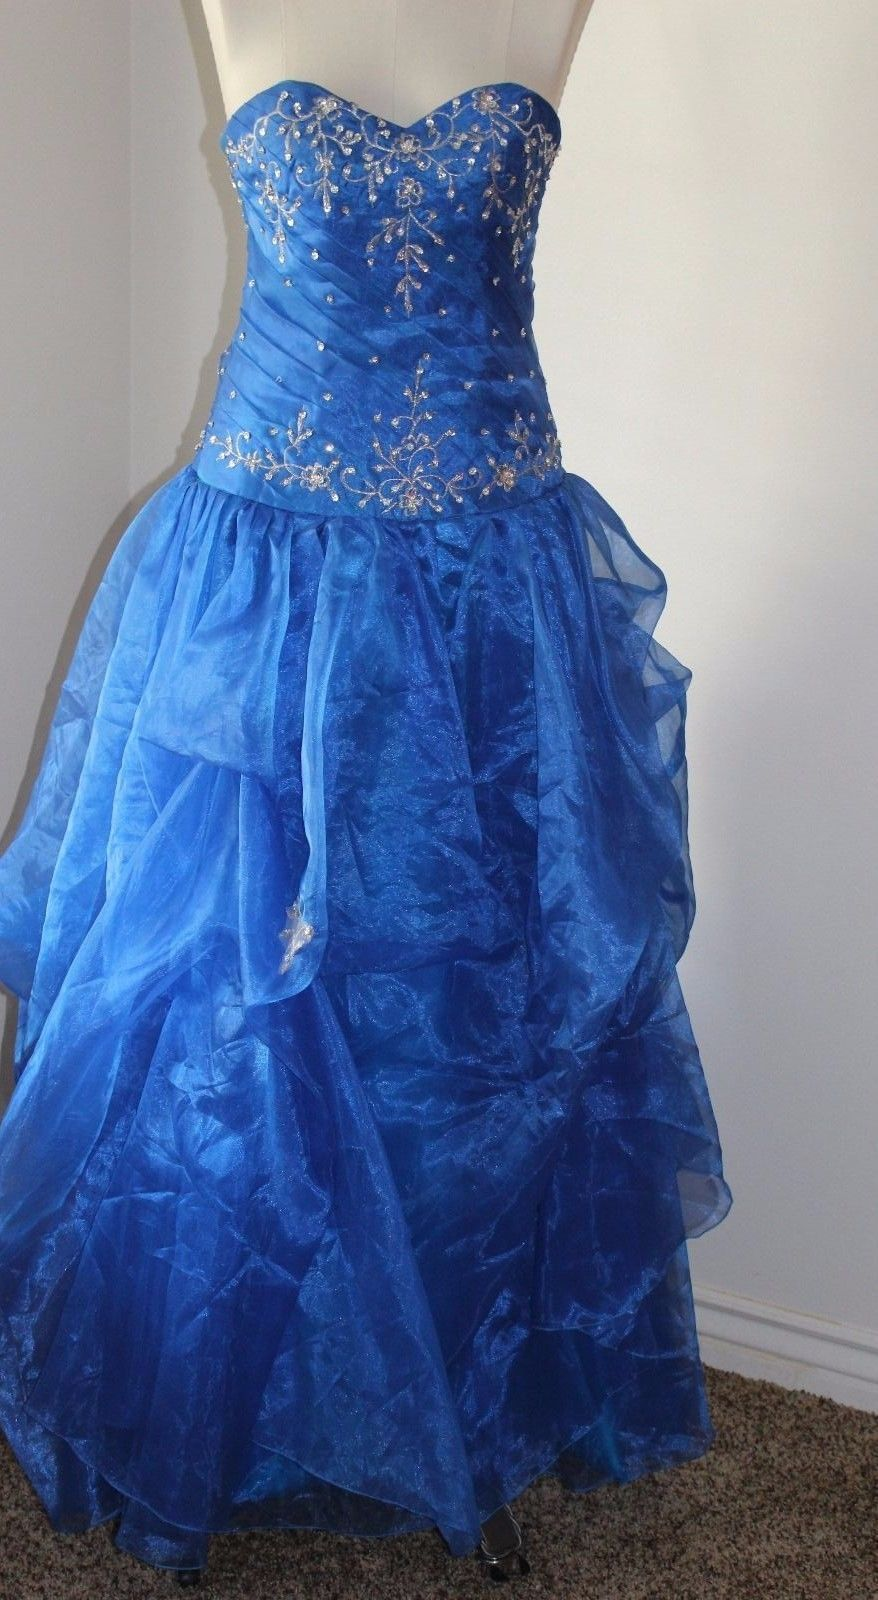 Royal blue strapless formal prom gown corset back size